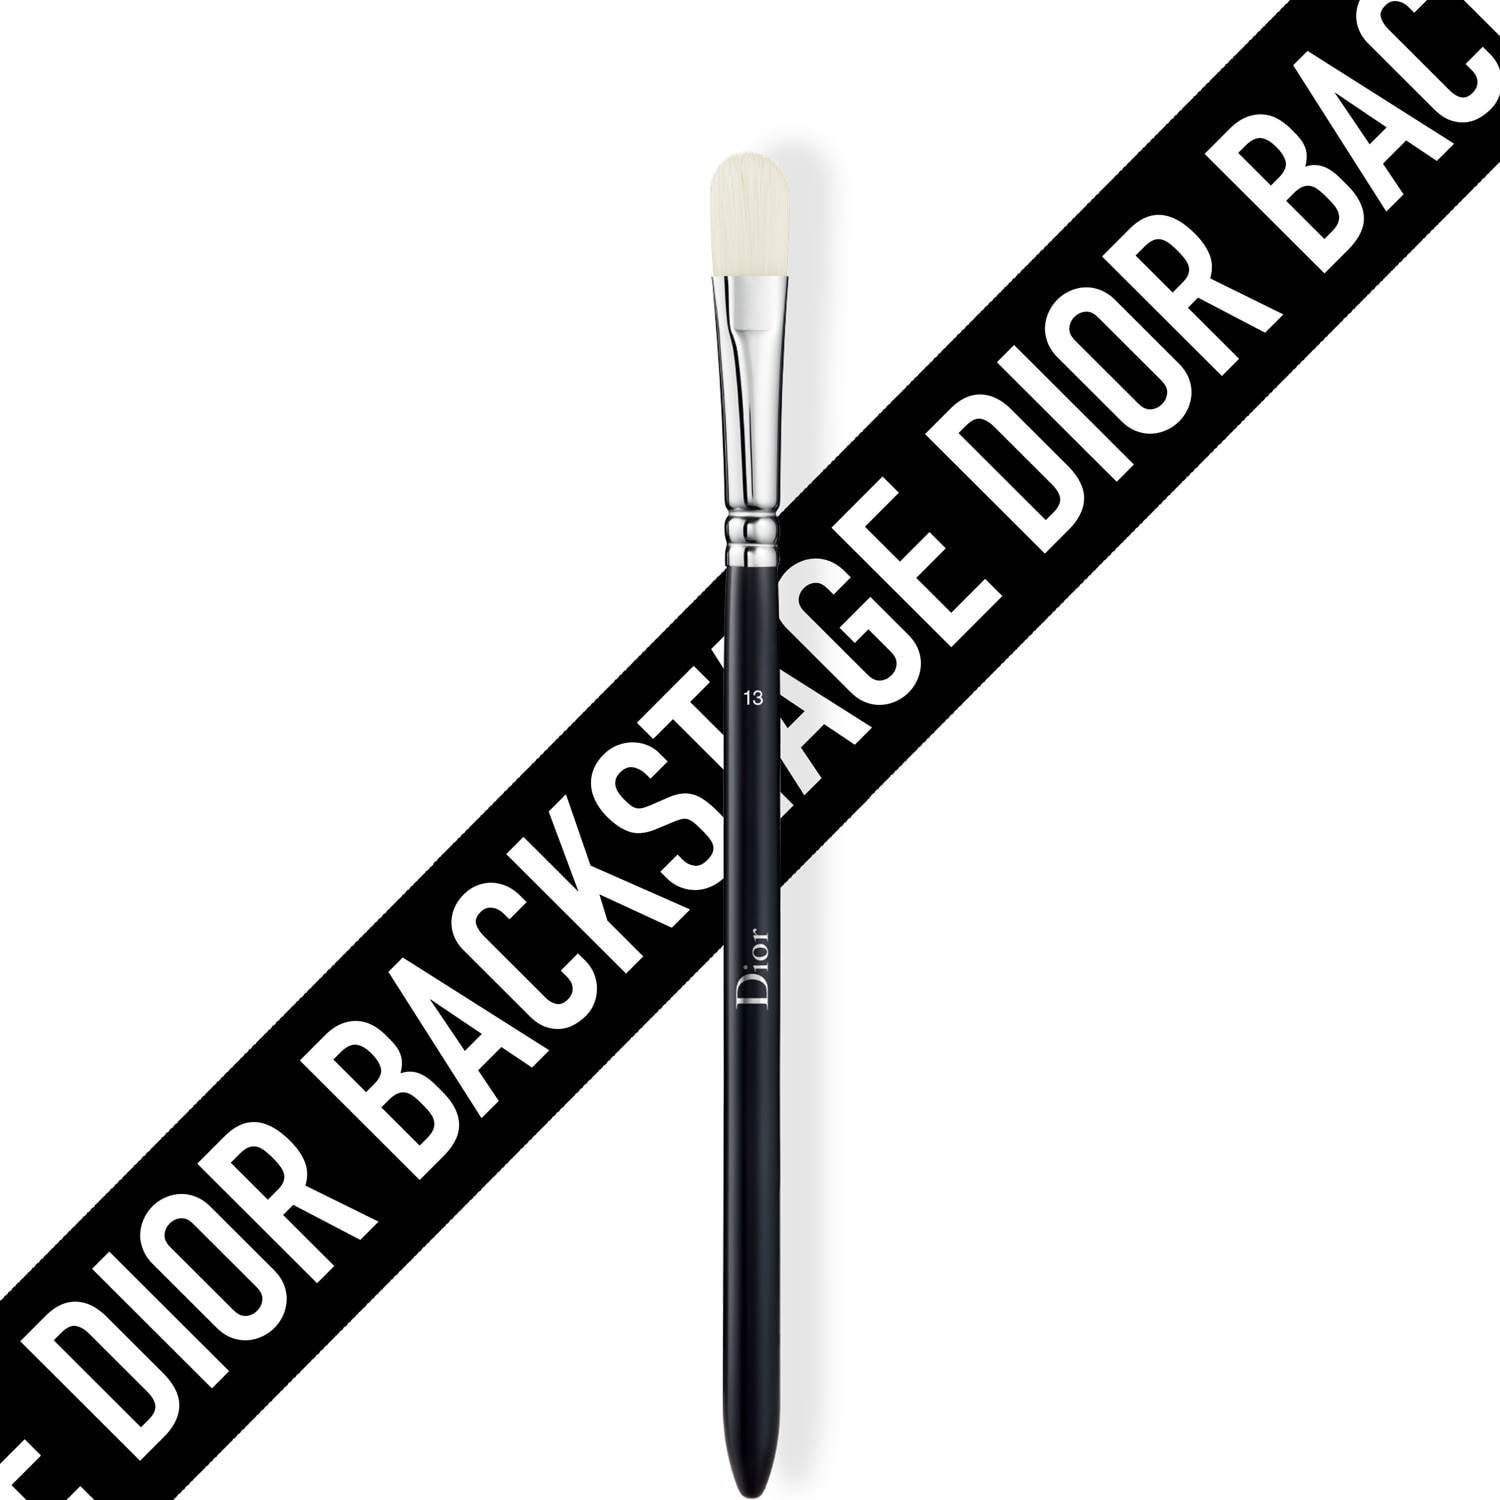 DIOR BACKSTAGE CONCEALER BRUSH NO. 13